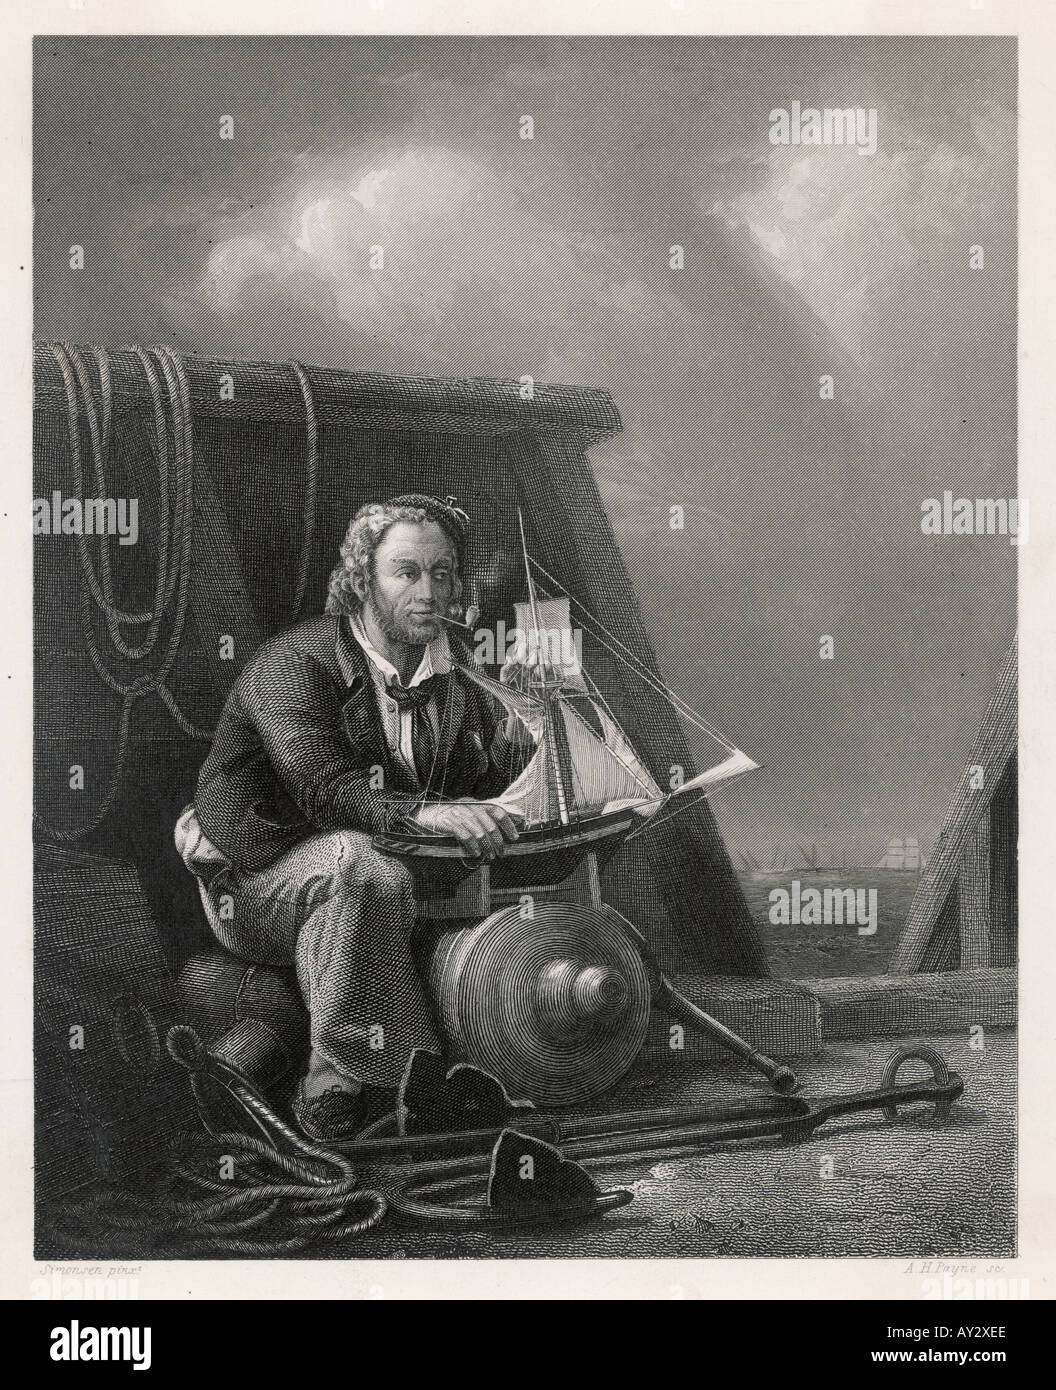 Sailor With Model Ship Stock Photo